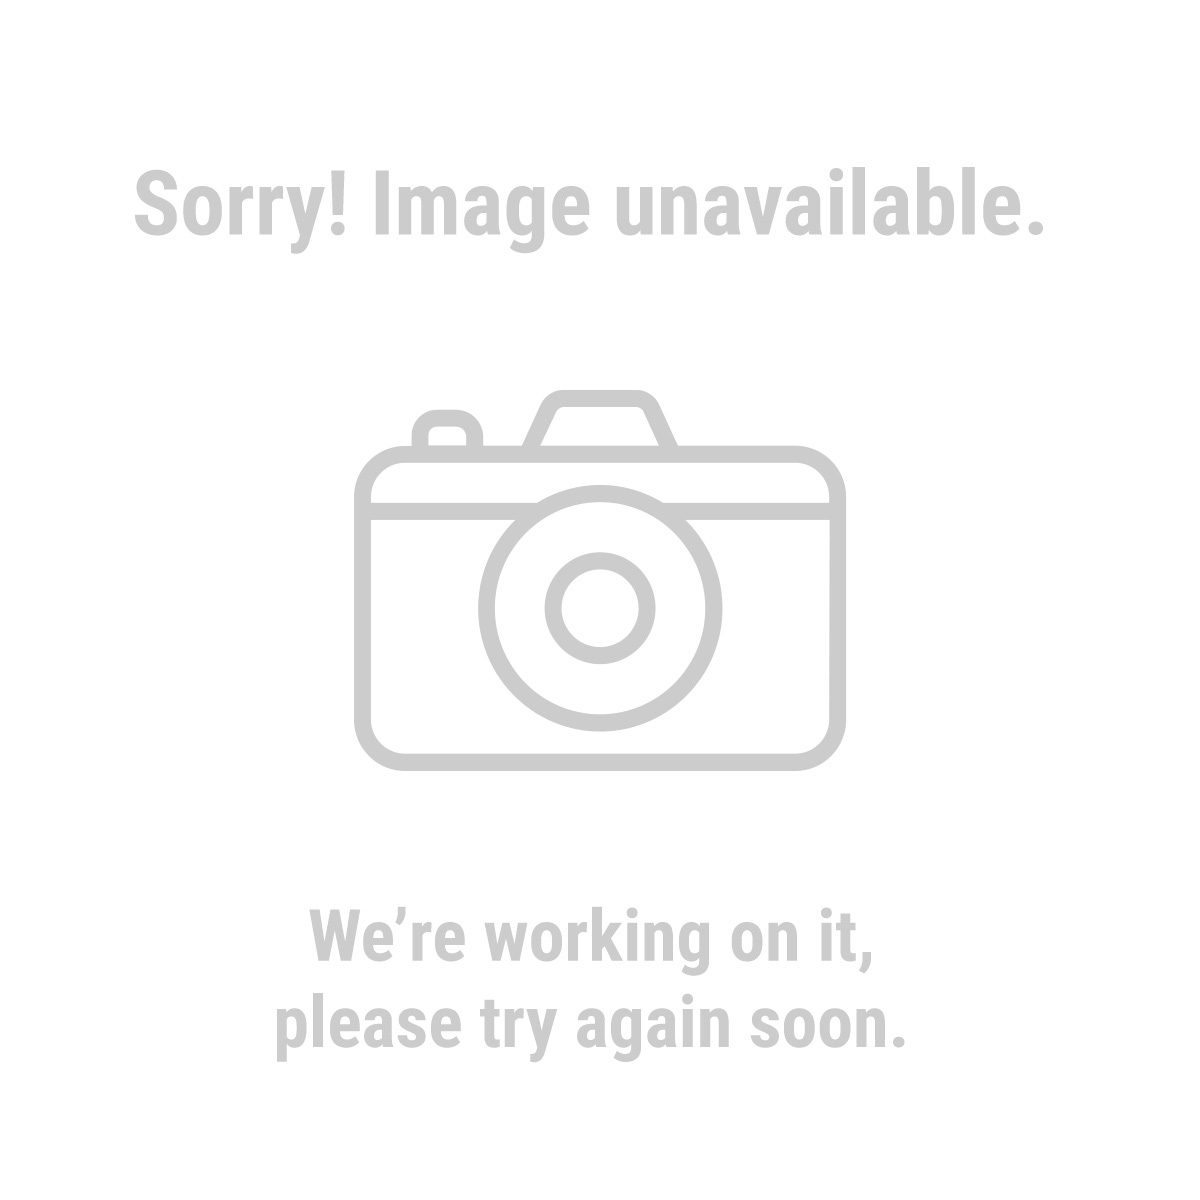 Central Pneumatic 68250 300 PSI Dry Gauge